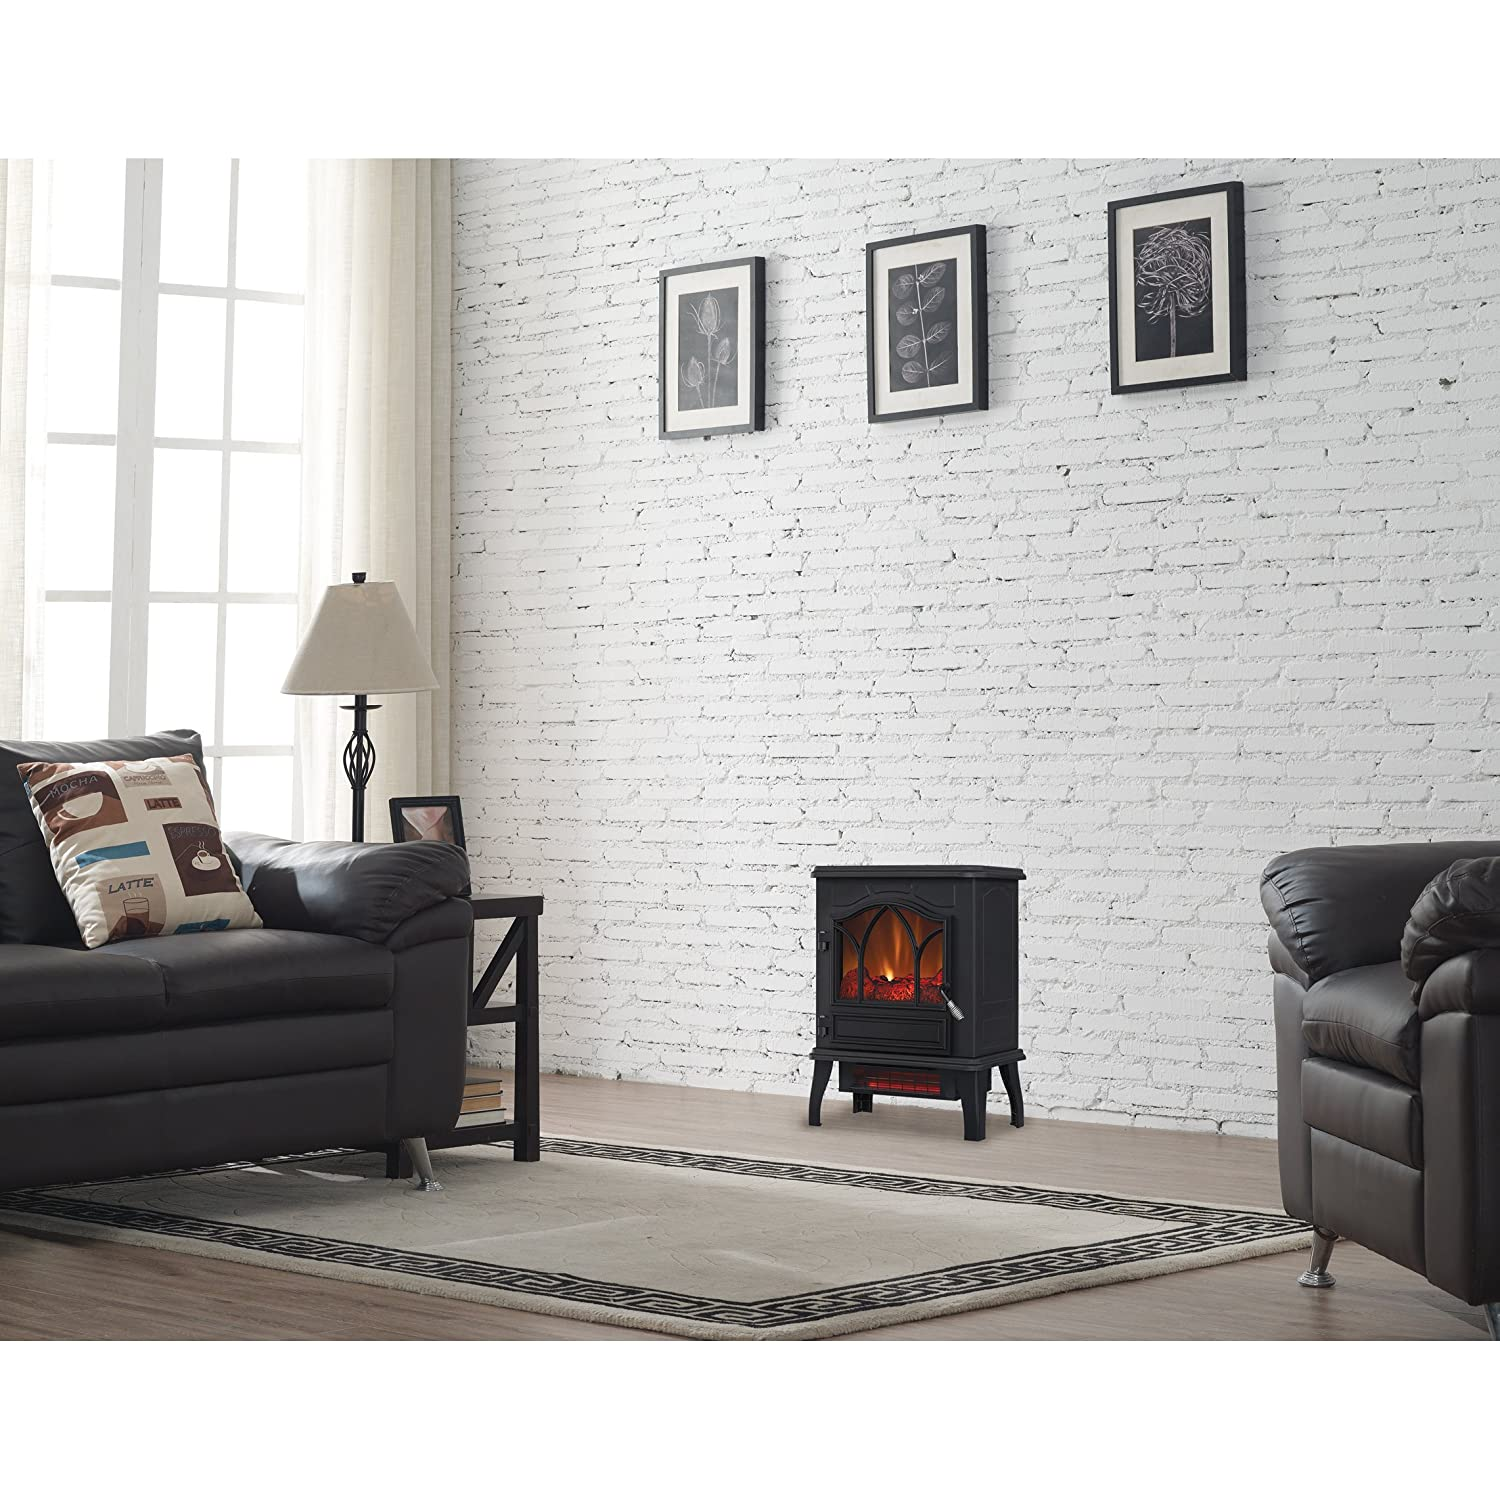 Amazon.com: Electric Quartz Infrared Fireplace Stove Heater with ...